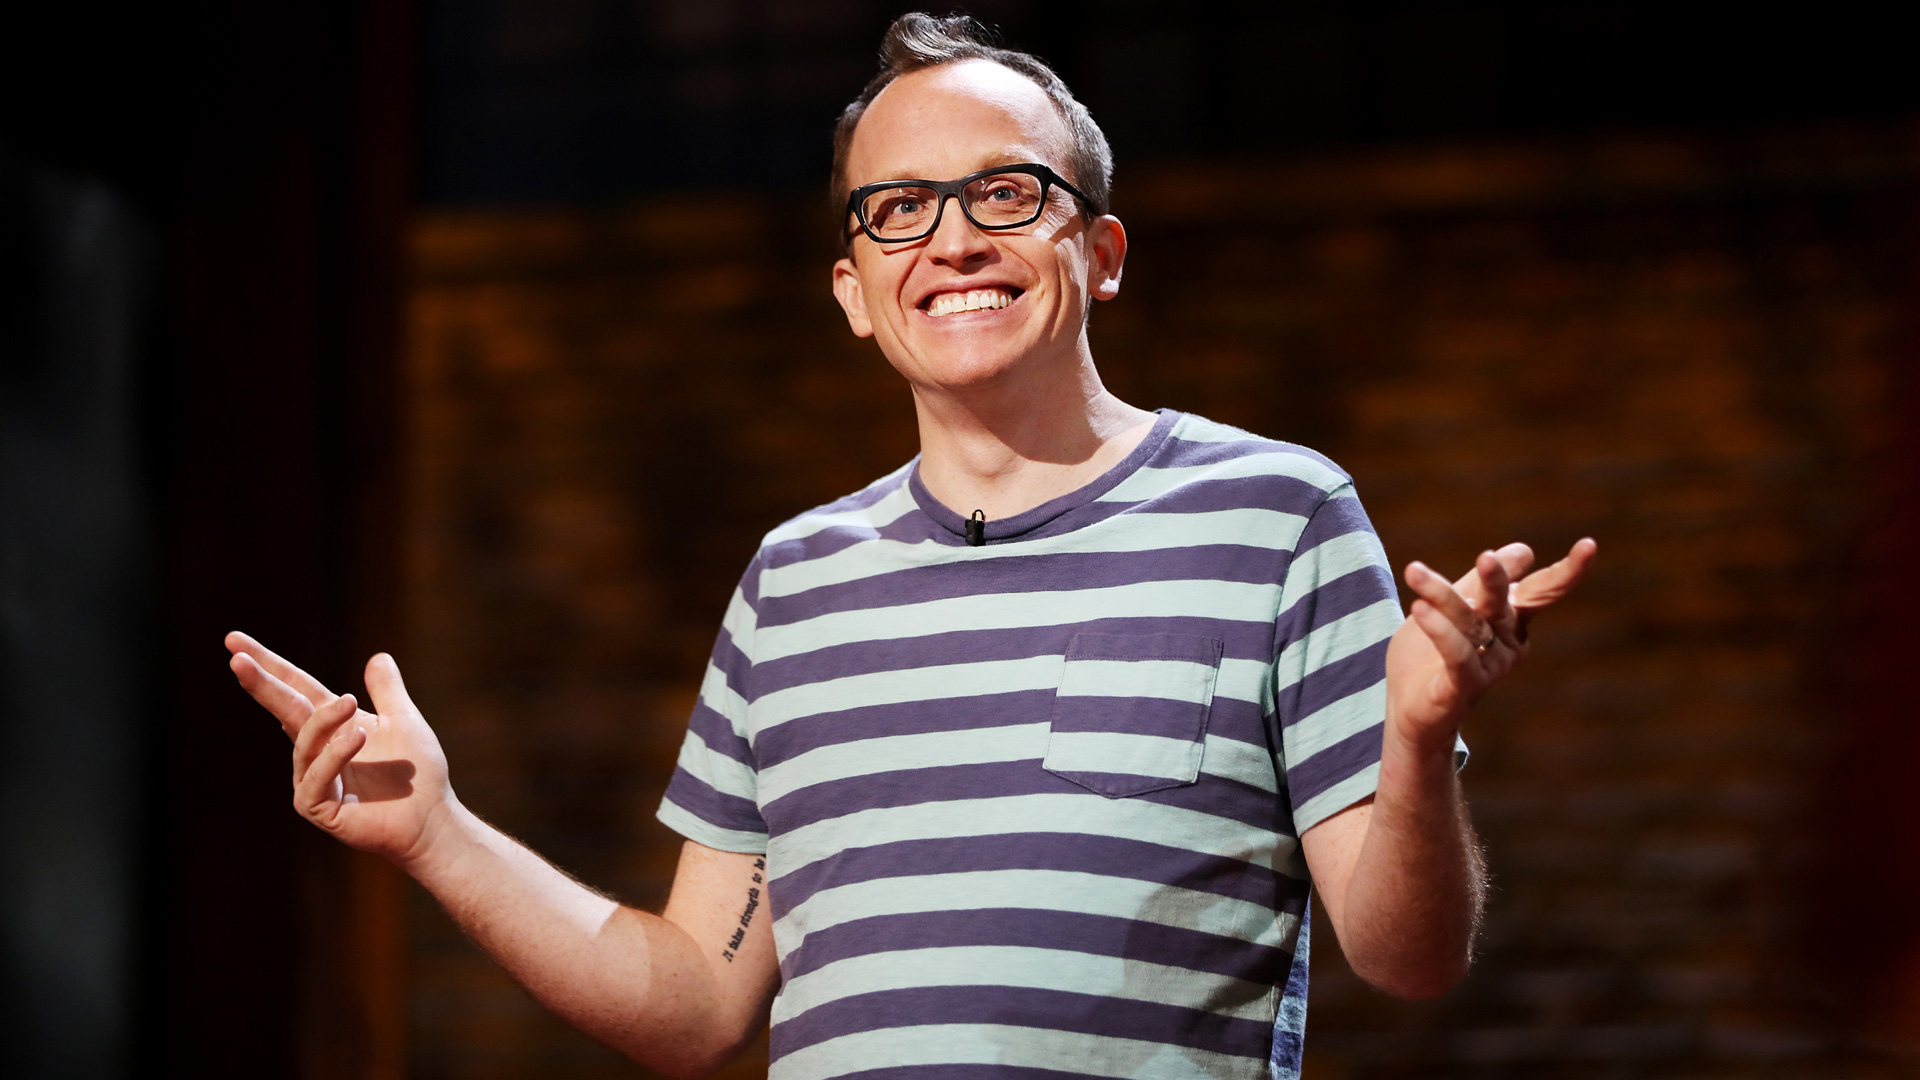 Click to access the HBO page for Chris Gethard's show